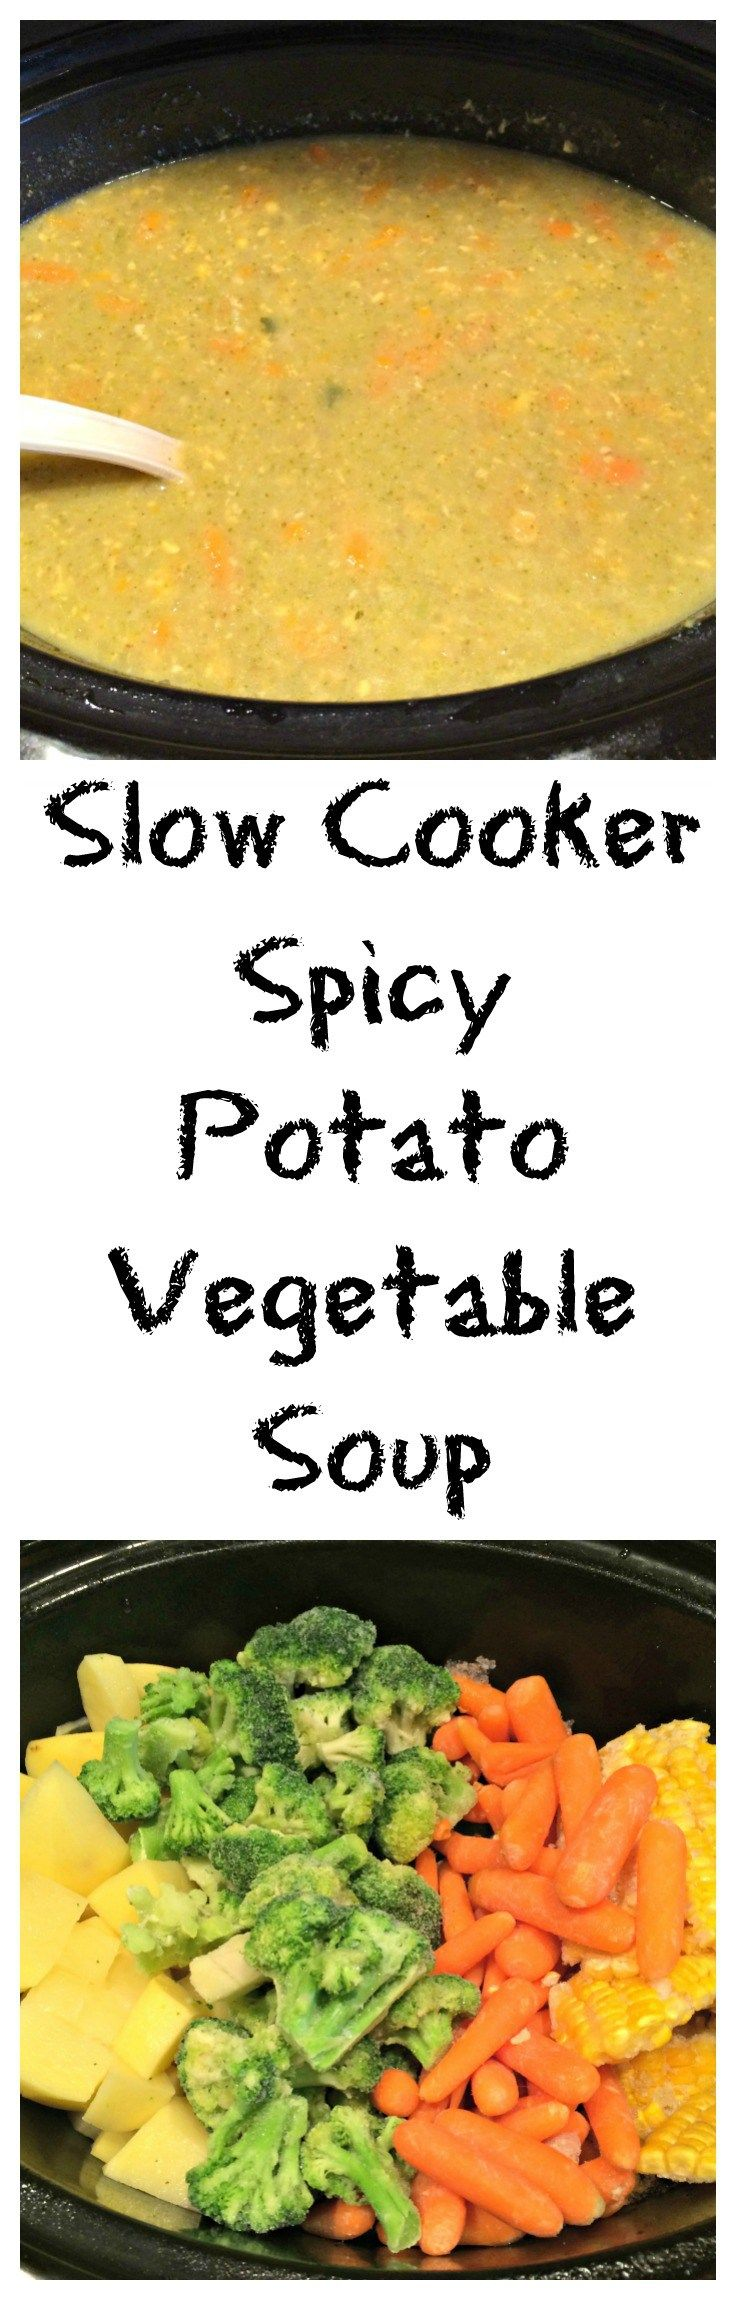 Slow Cooker Spicy Potato Vegetable Soup Recipe